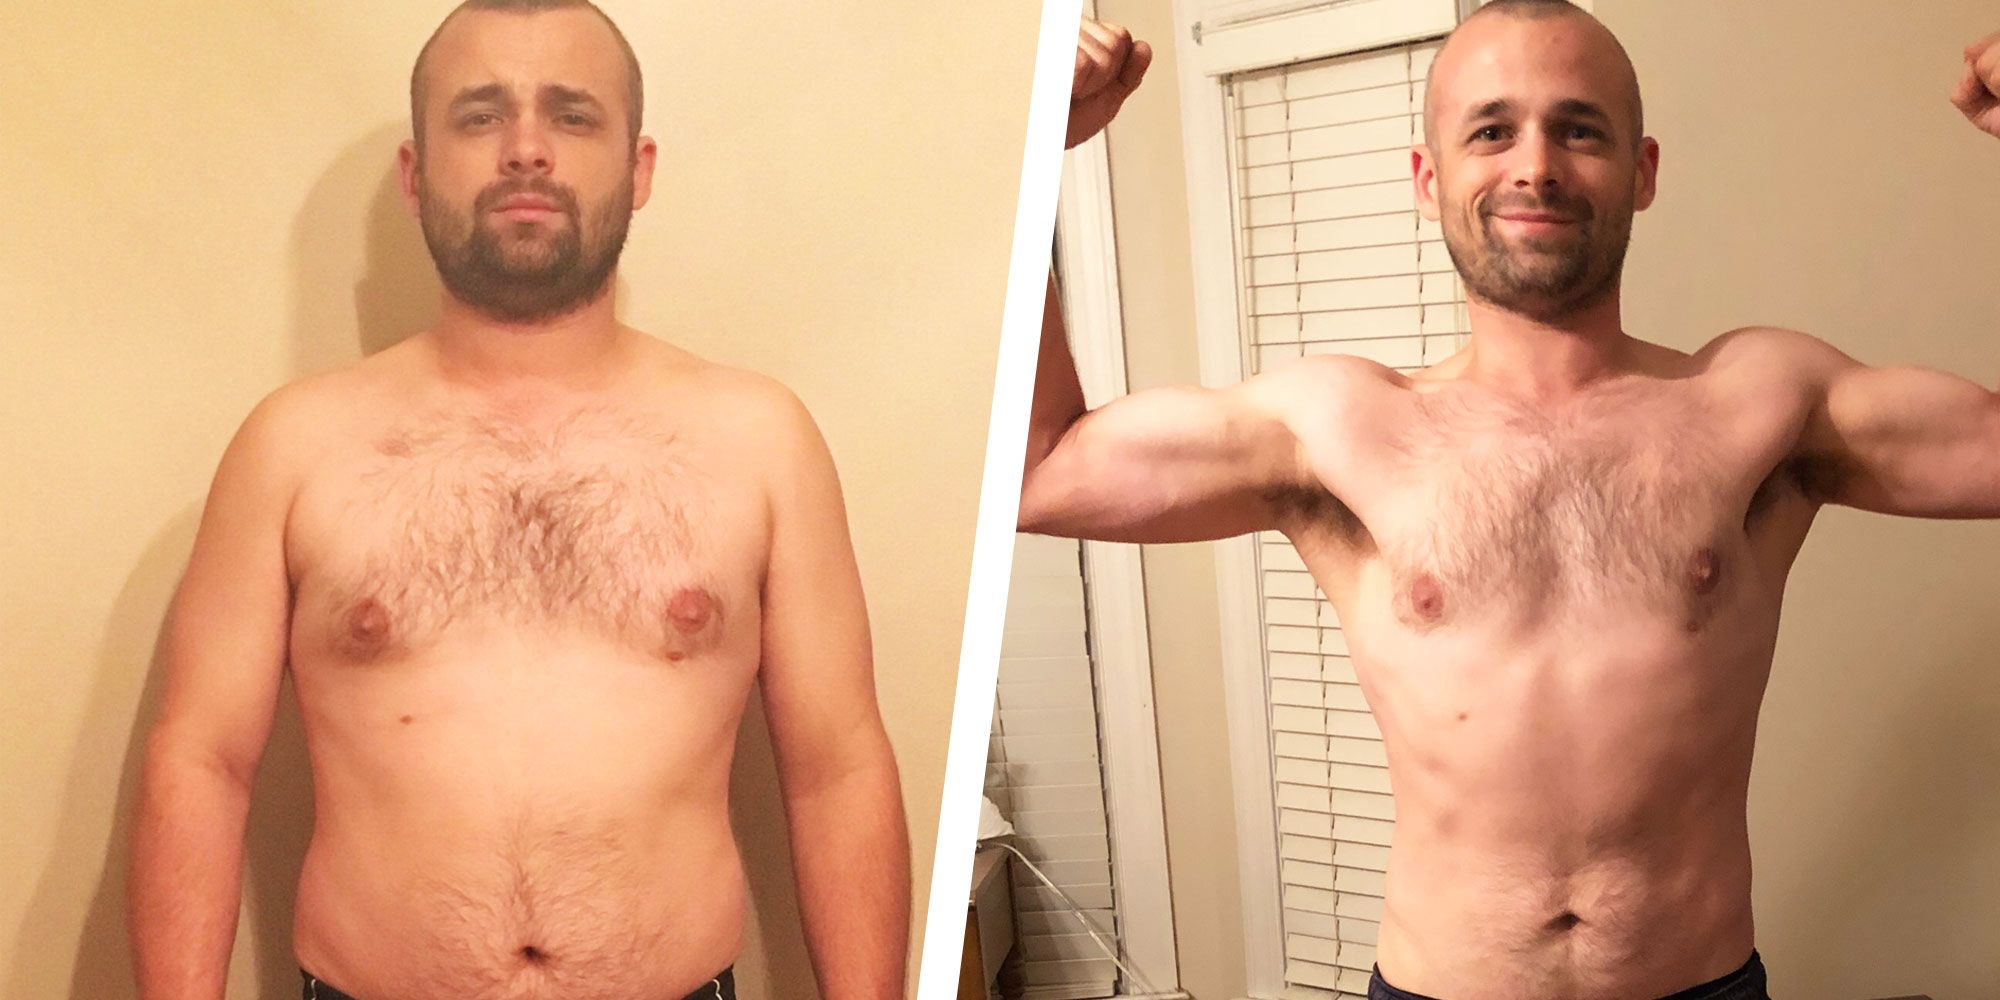 A Simple Diet Helped This Guy Lose 10 Pounds in 10 Months